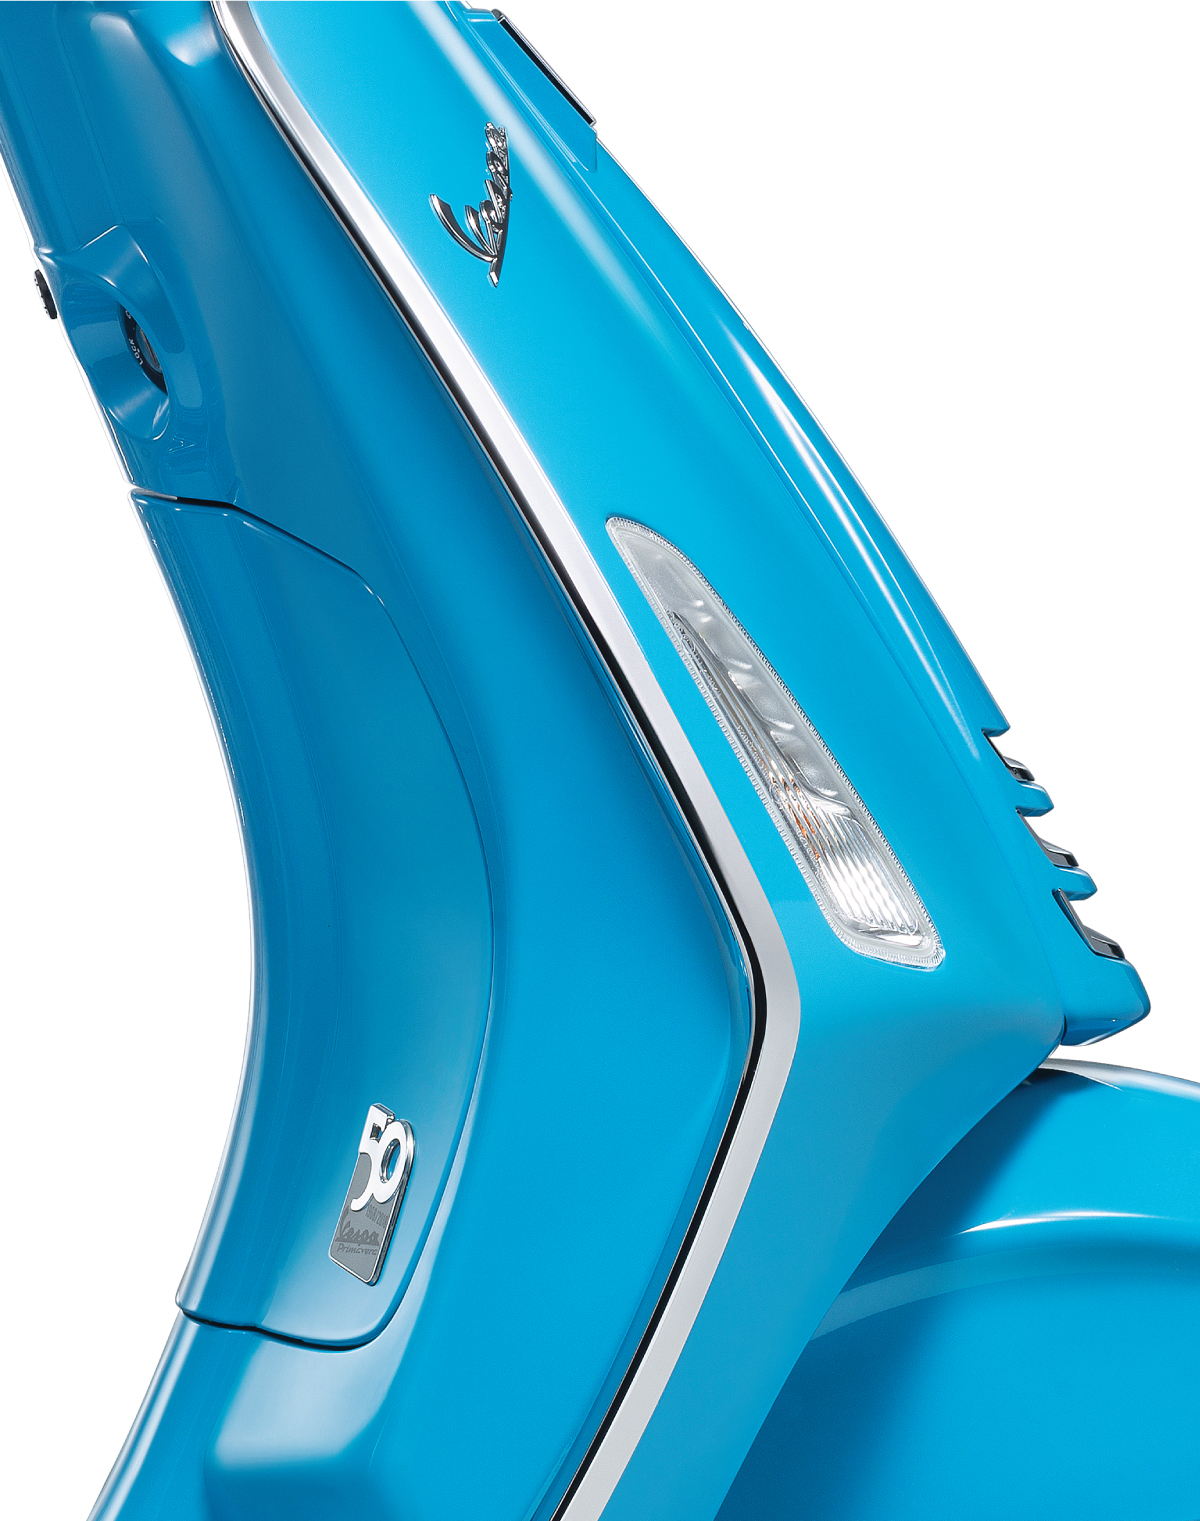 detail-vespa-50th-anniversary-blue-logo.jpg